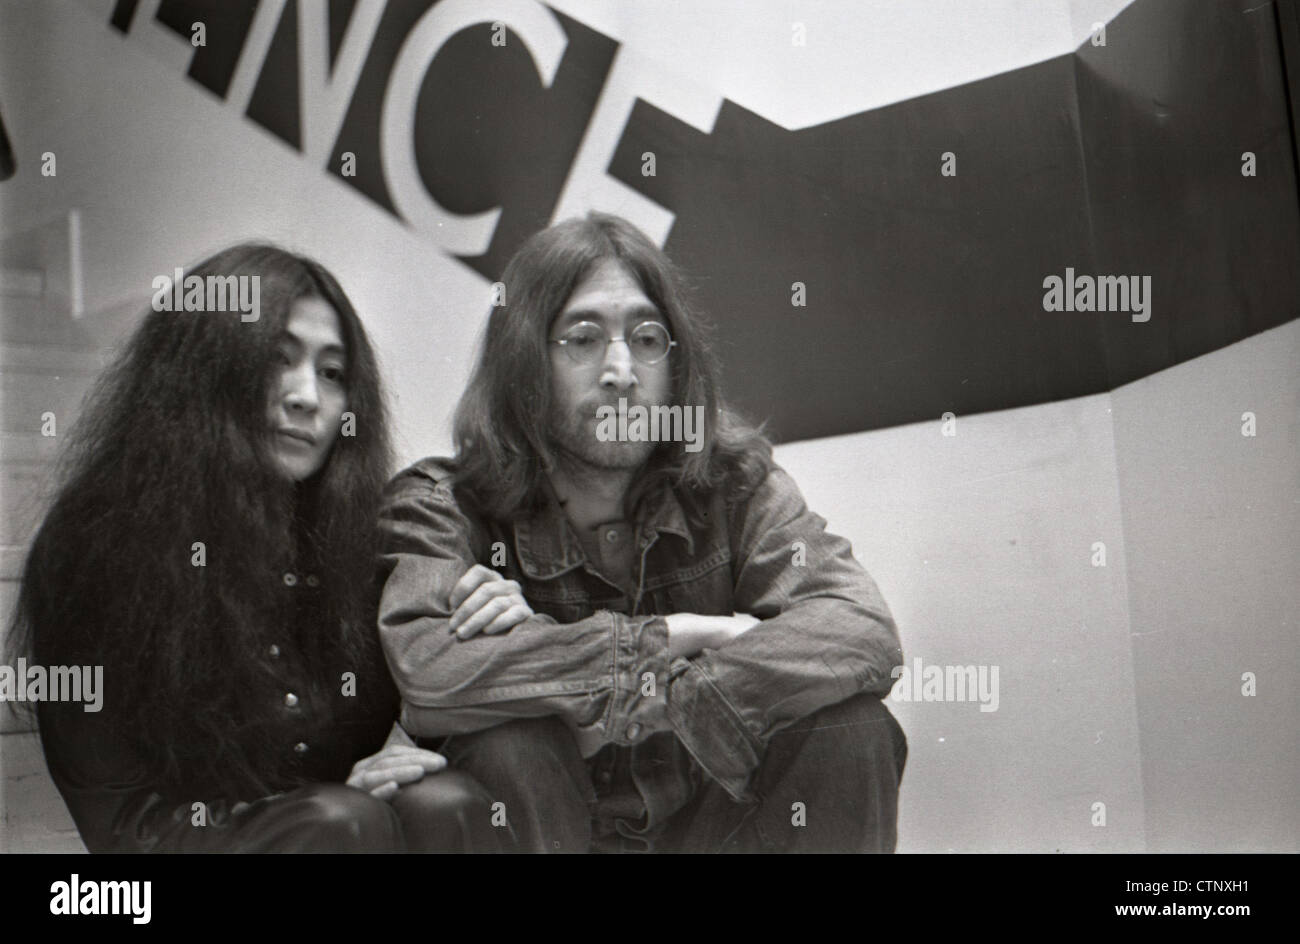 003654 - John Lennon and Yoko Ono in Cambridge on 2nd March 1969 - Stock Image